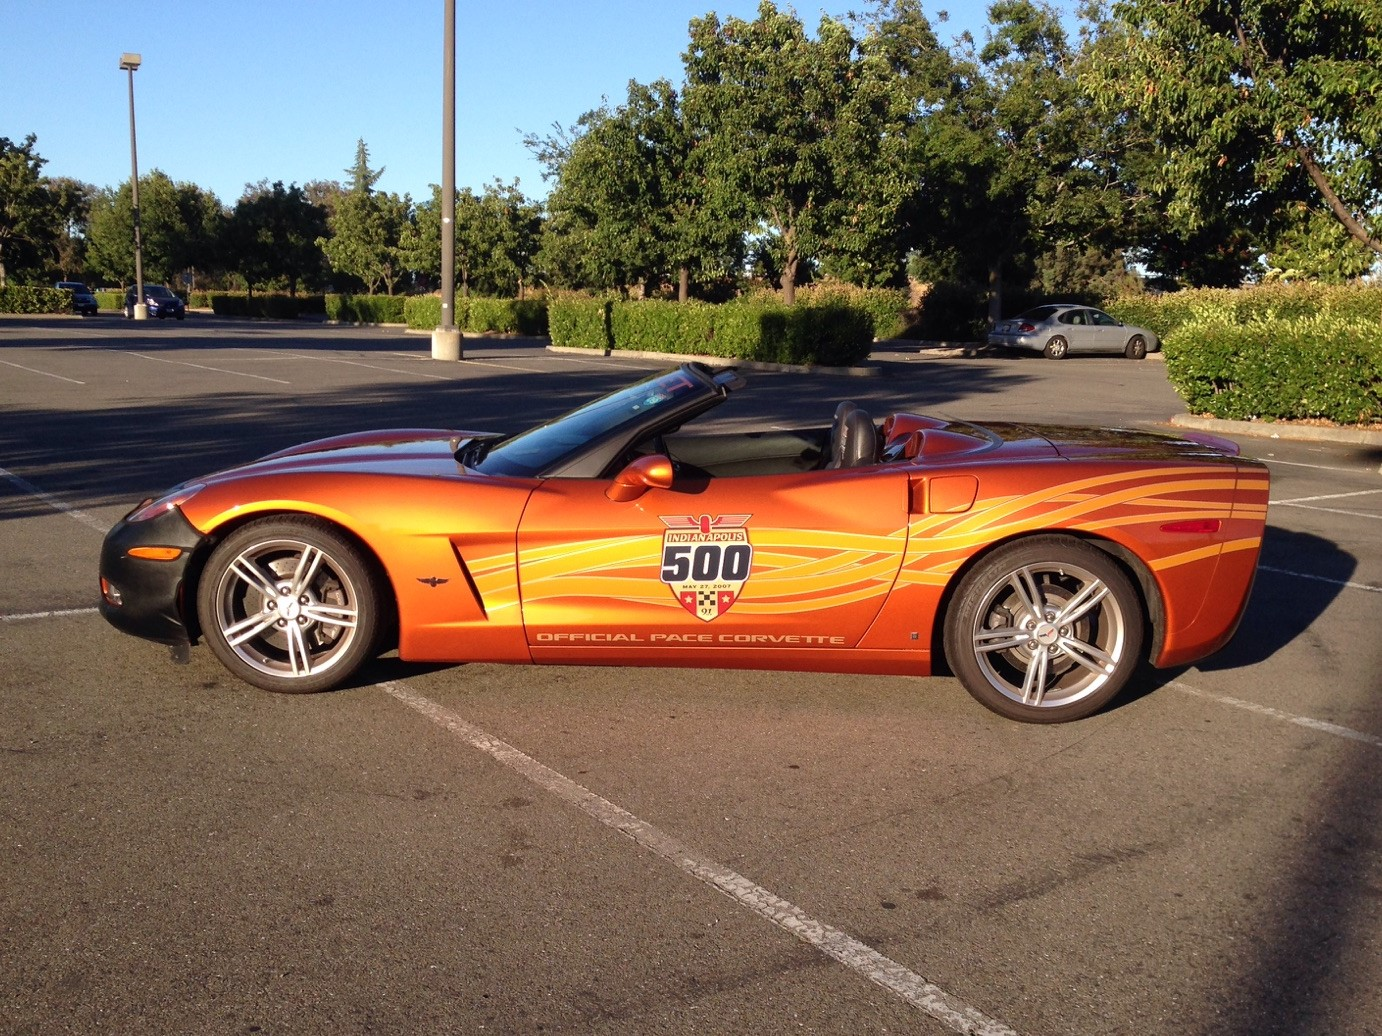 Tom's 2007 Indy Pace Car Replica Convertible